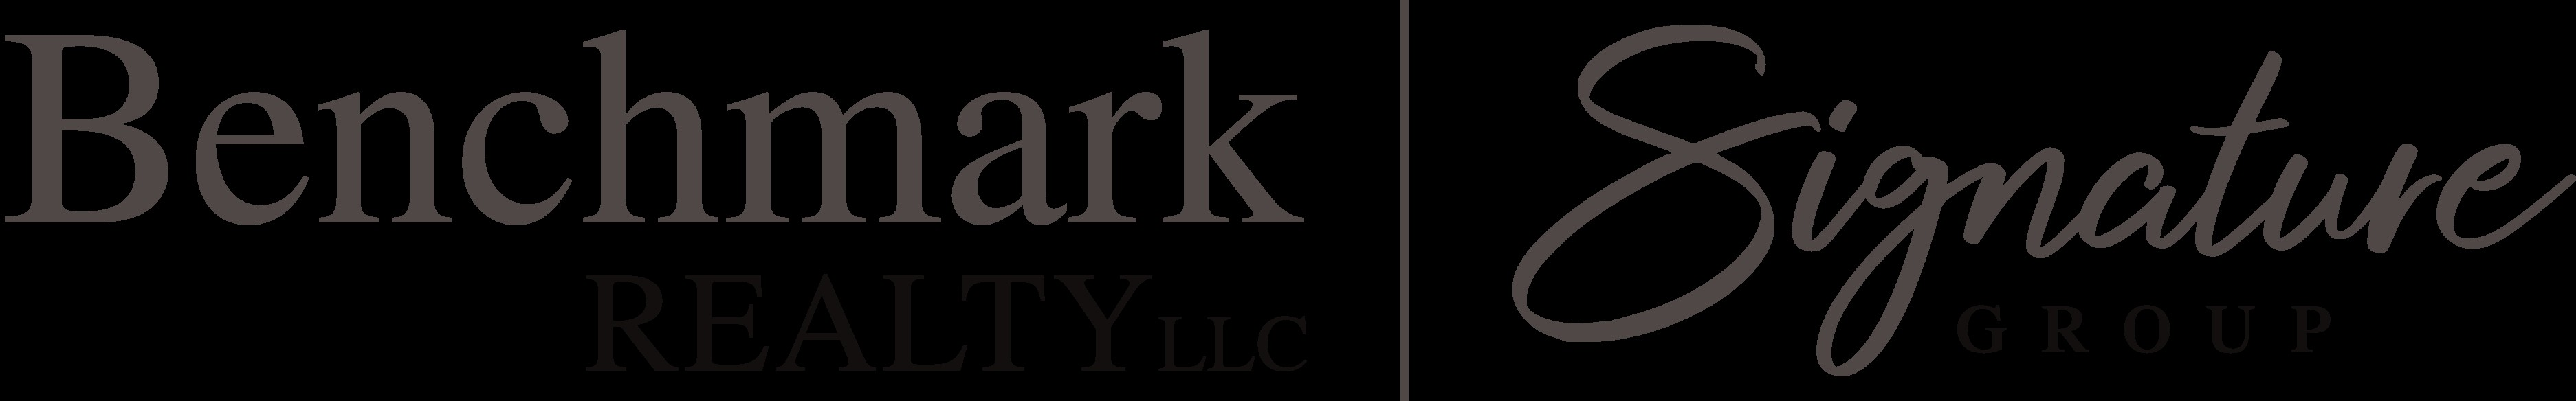 Real Estate Team logo - Benchmark Realty Signature Group